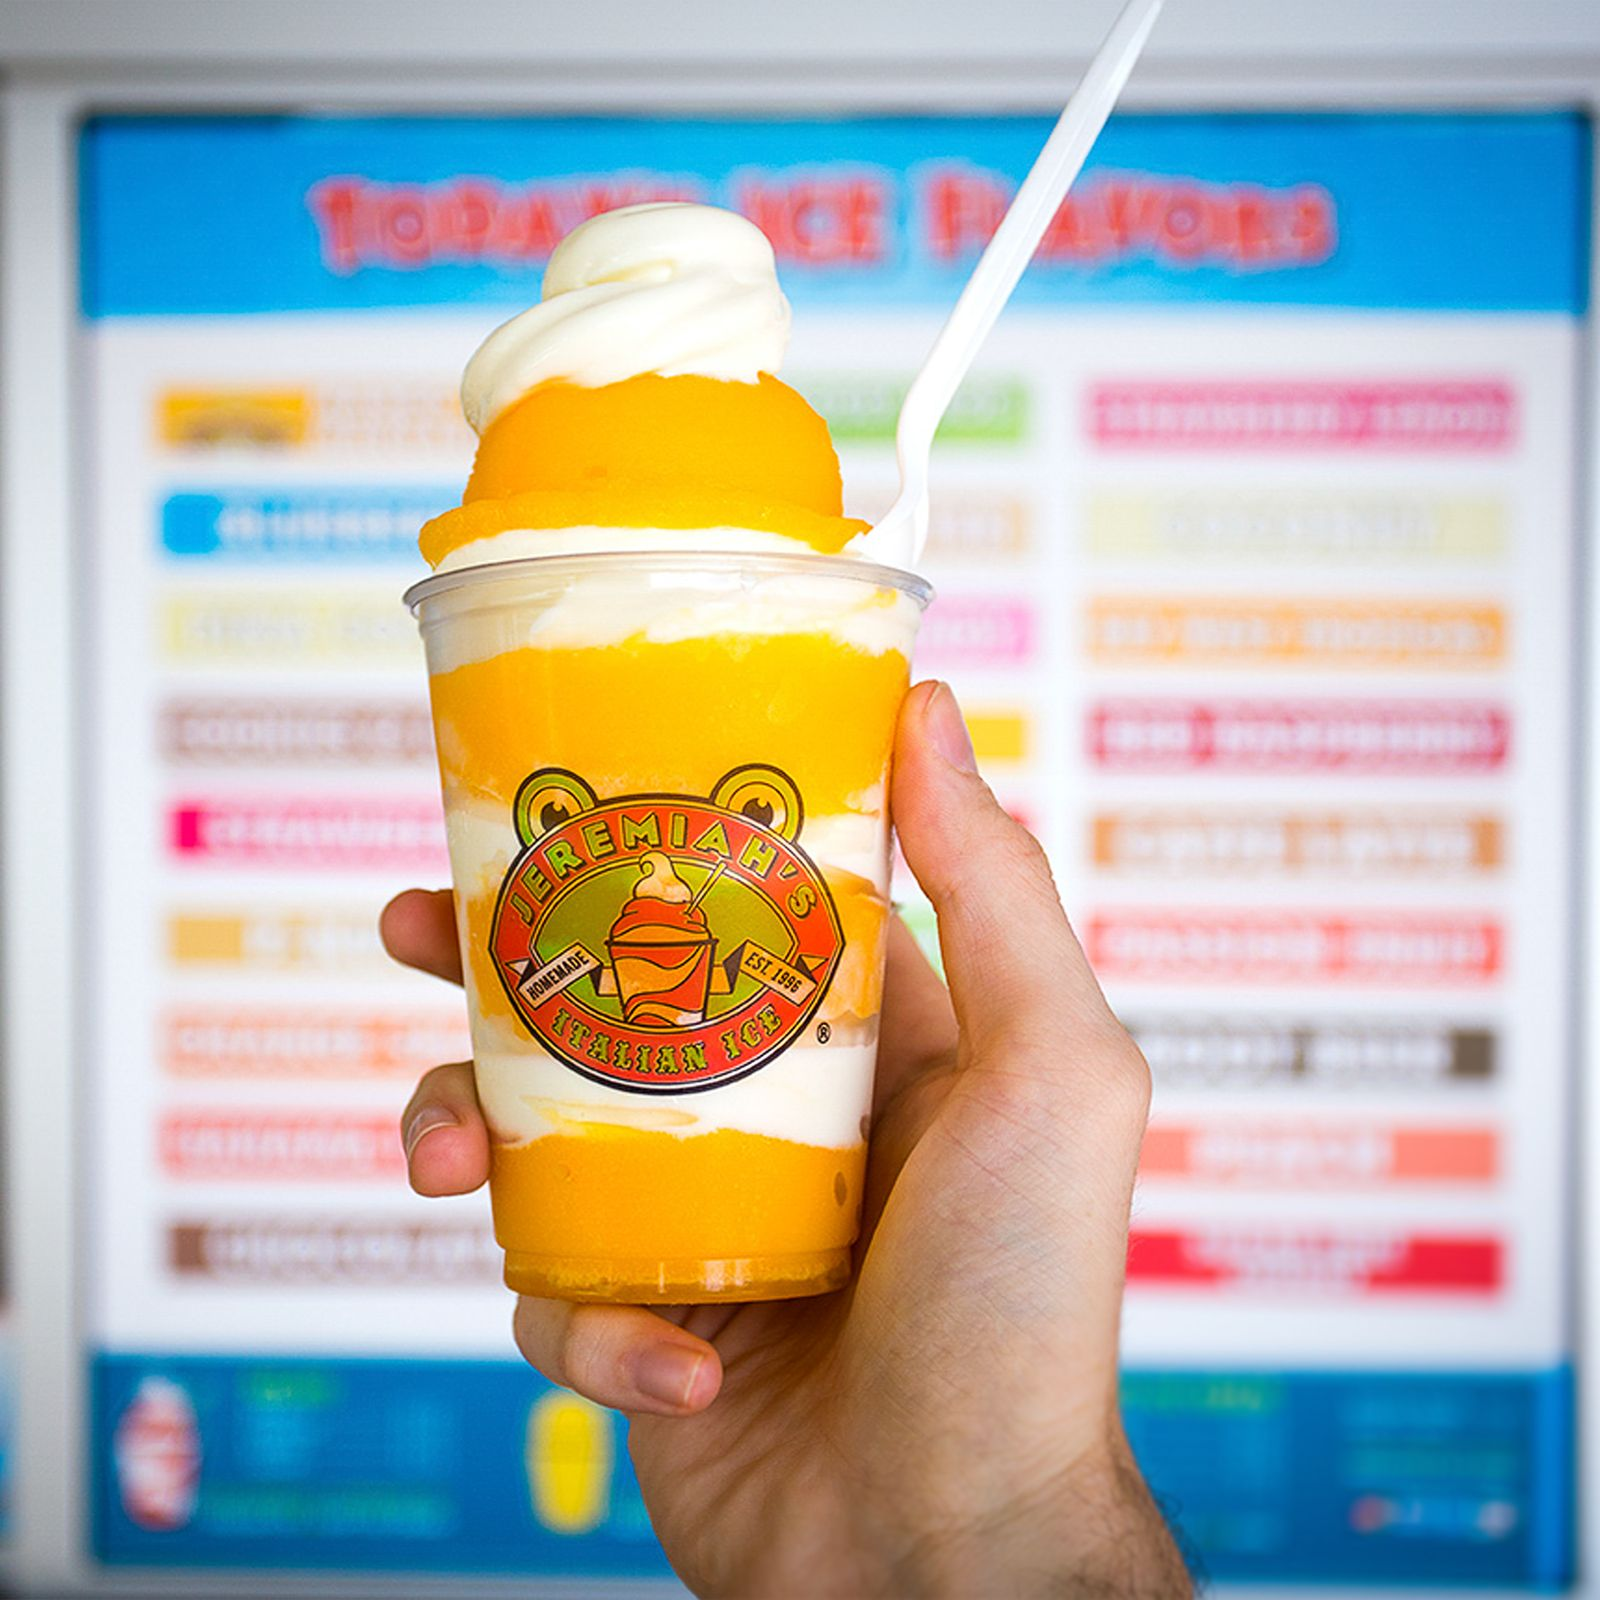 Jeremiah's Italian Ice Continues Takeover of Frozen Treats Category